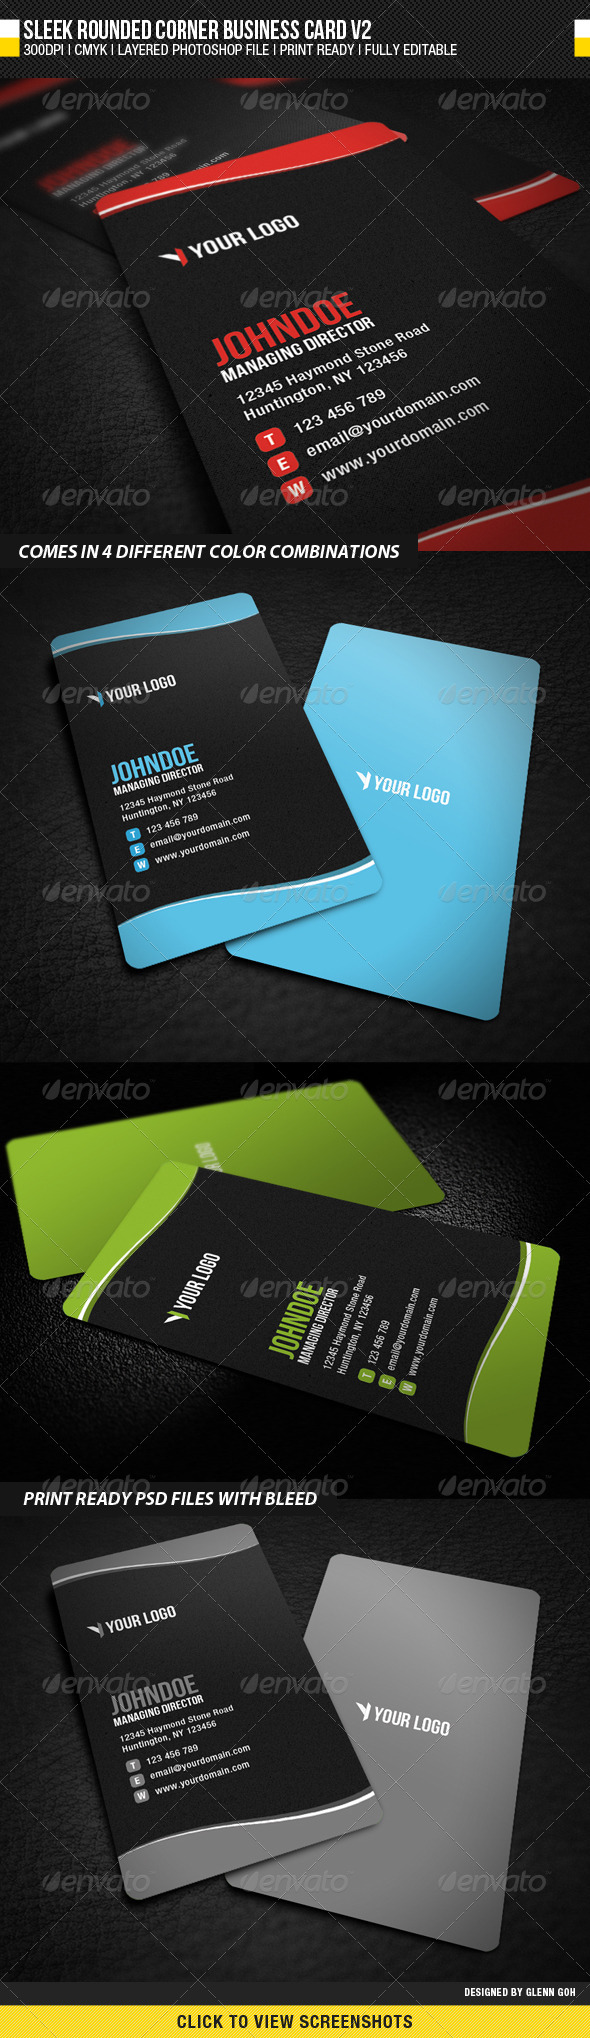 Sleek Rounded Corner Business Card V2 - Corporate Business Cards